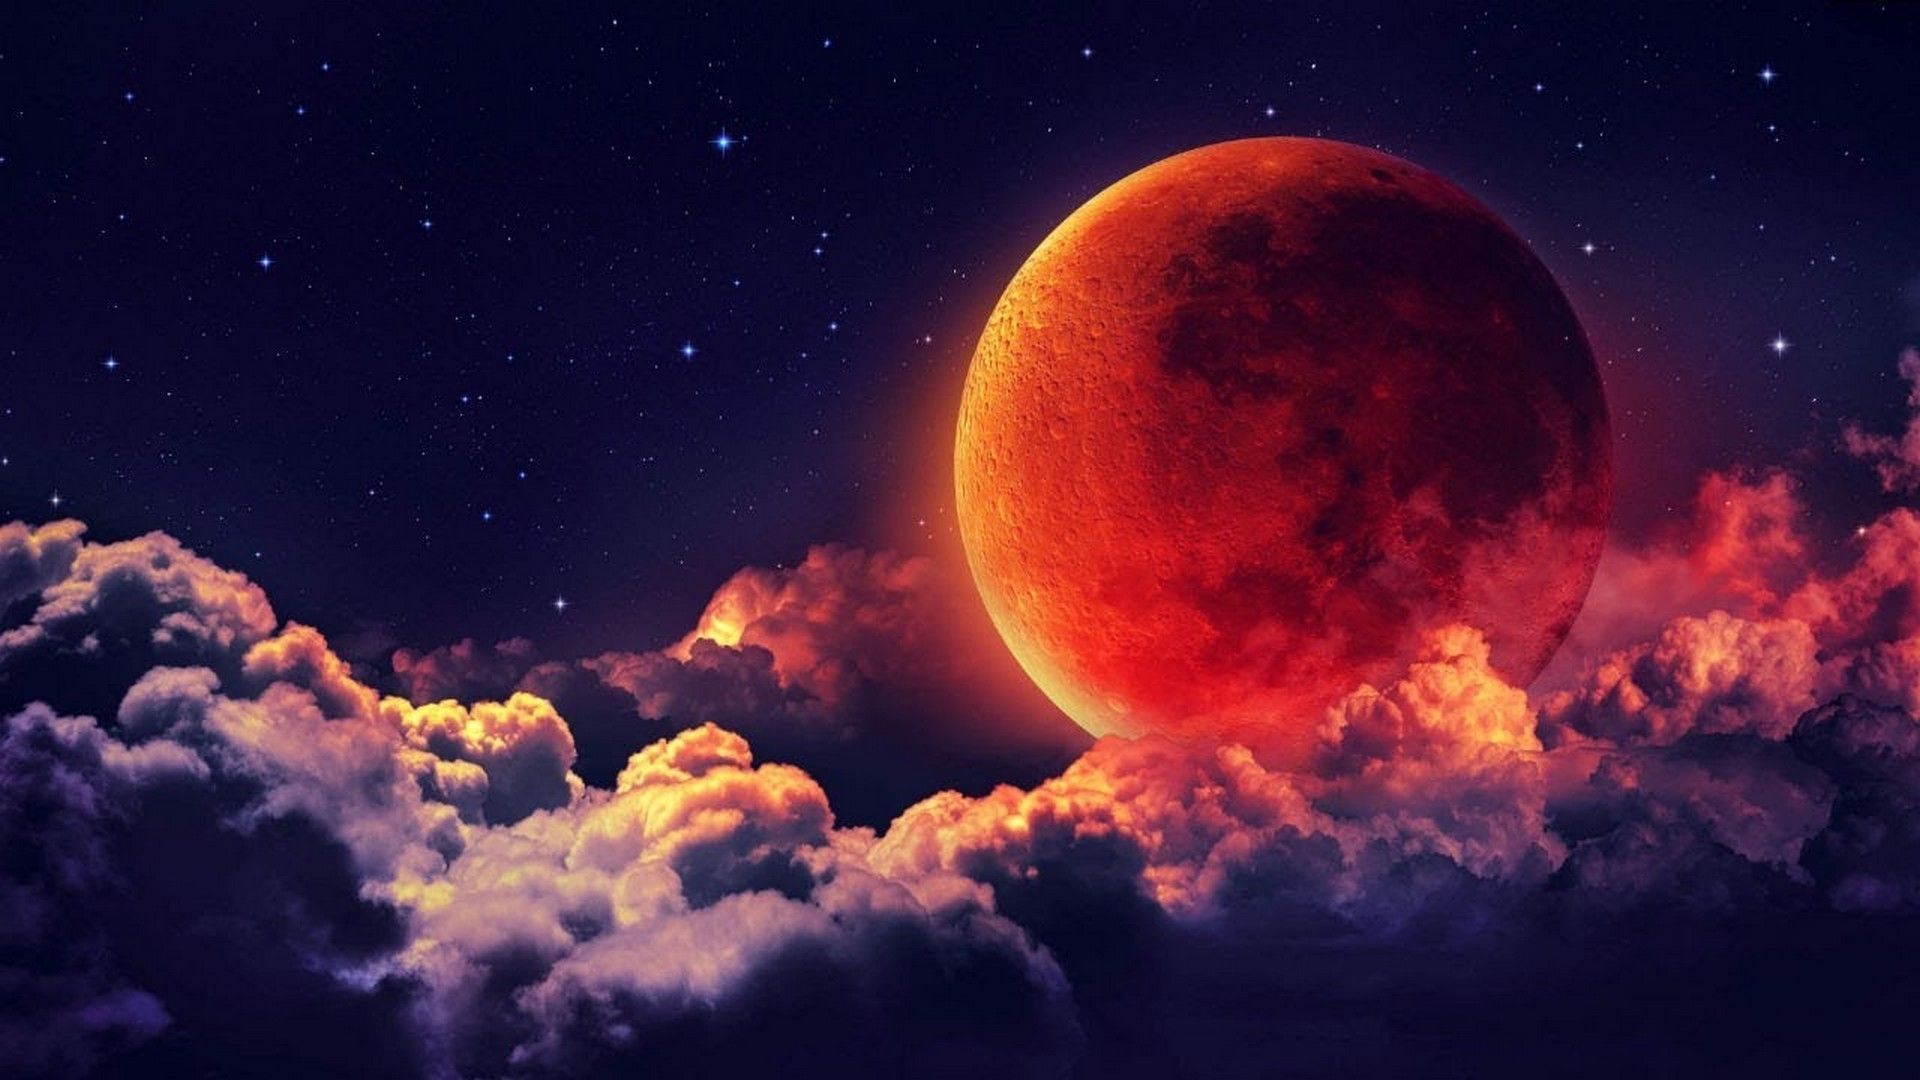 mtg bloodmoon, anime blood moon